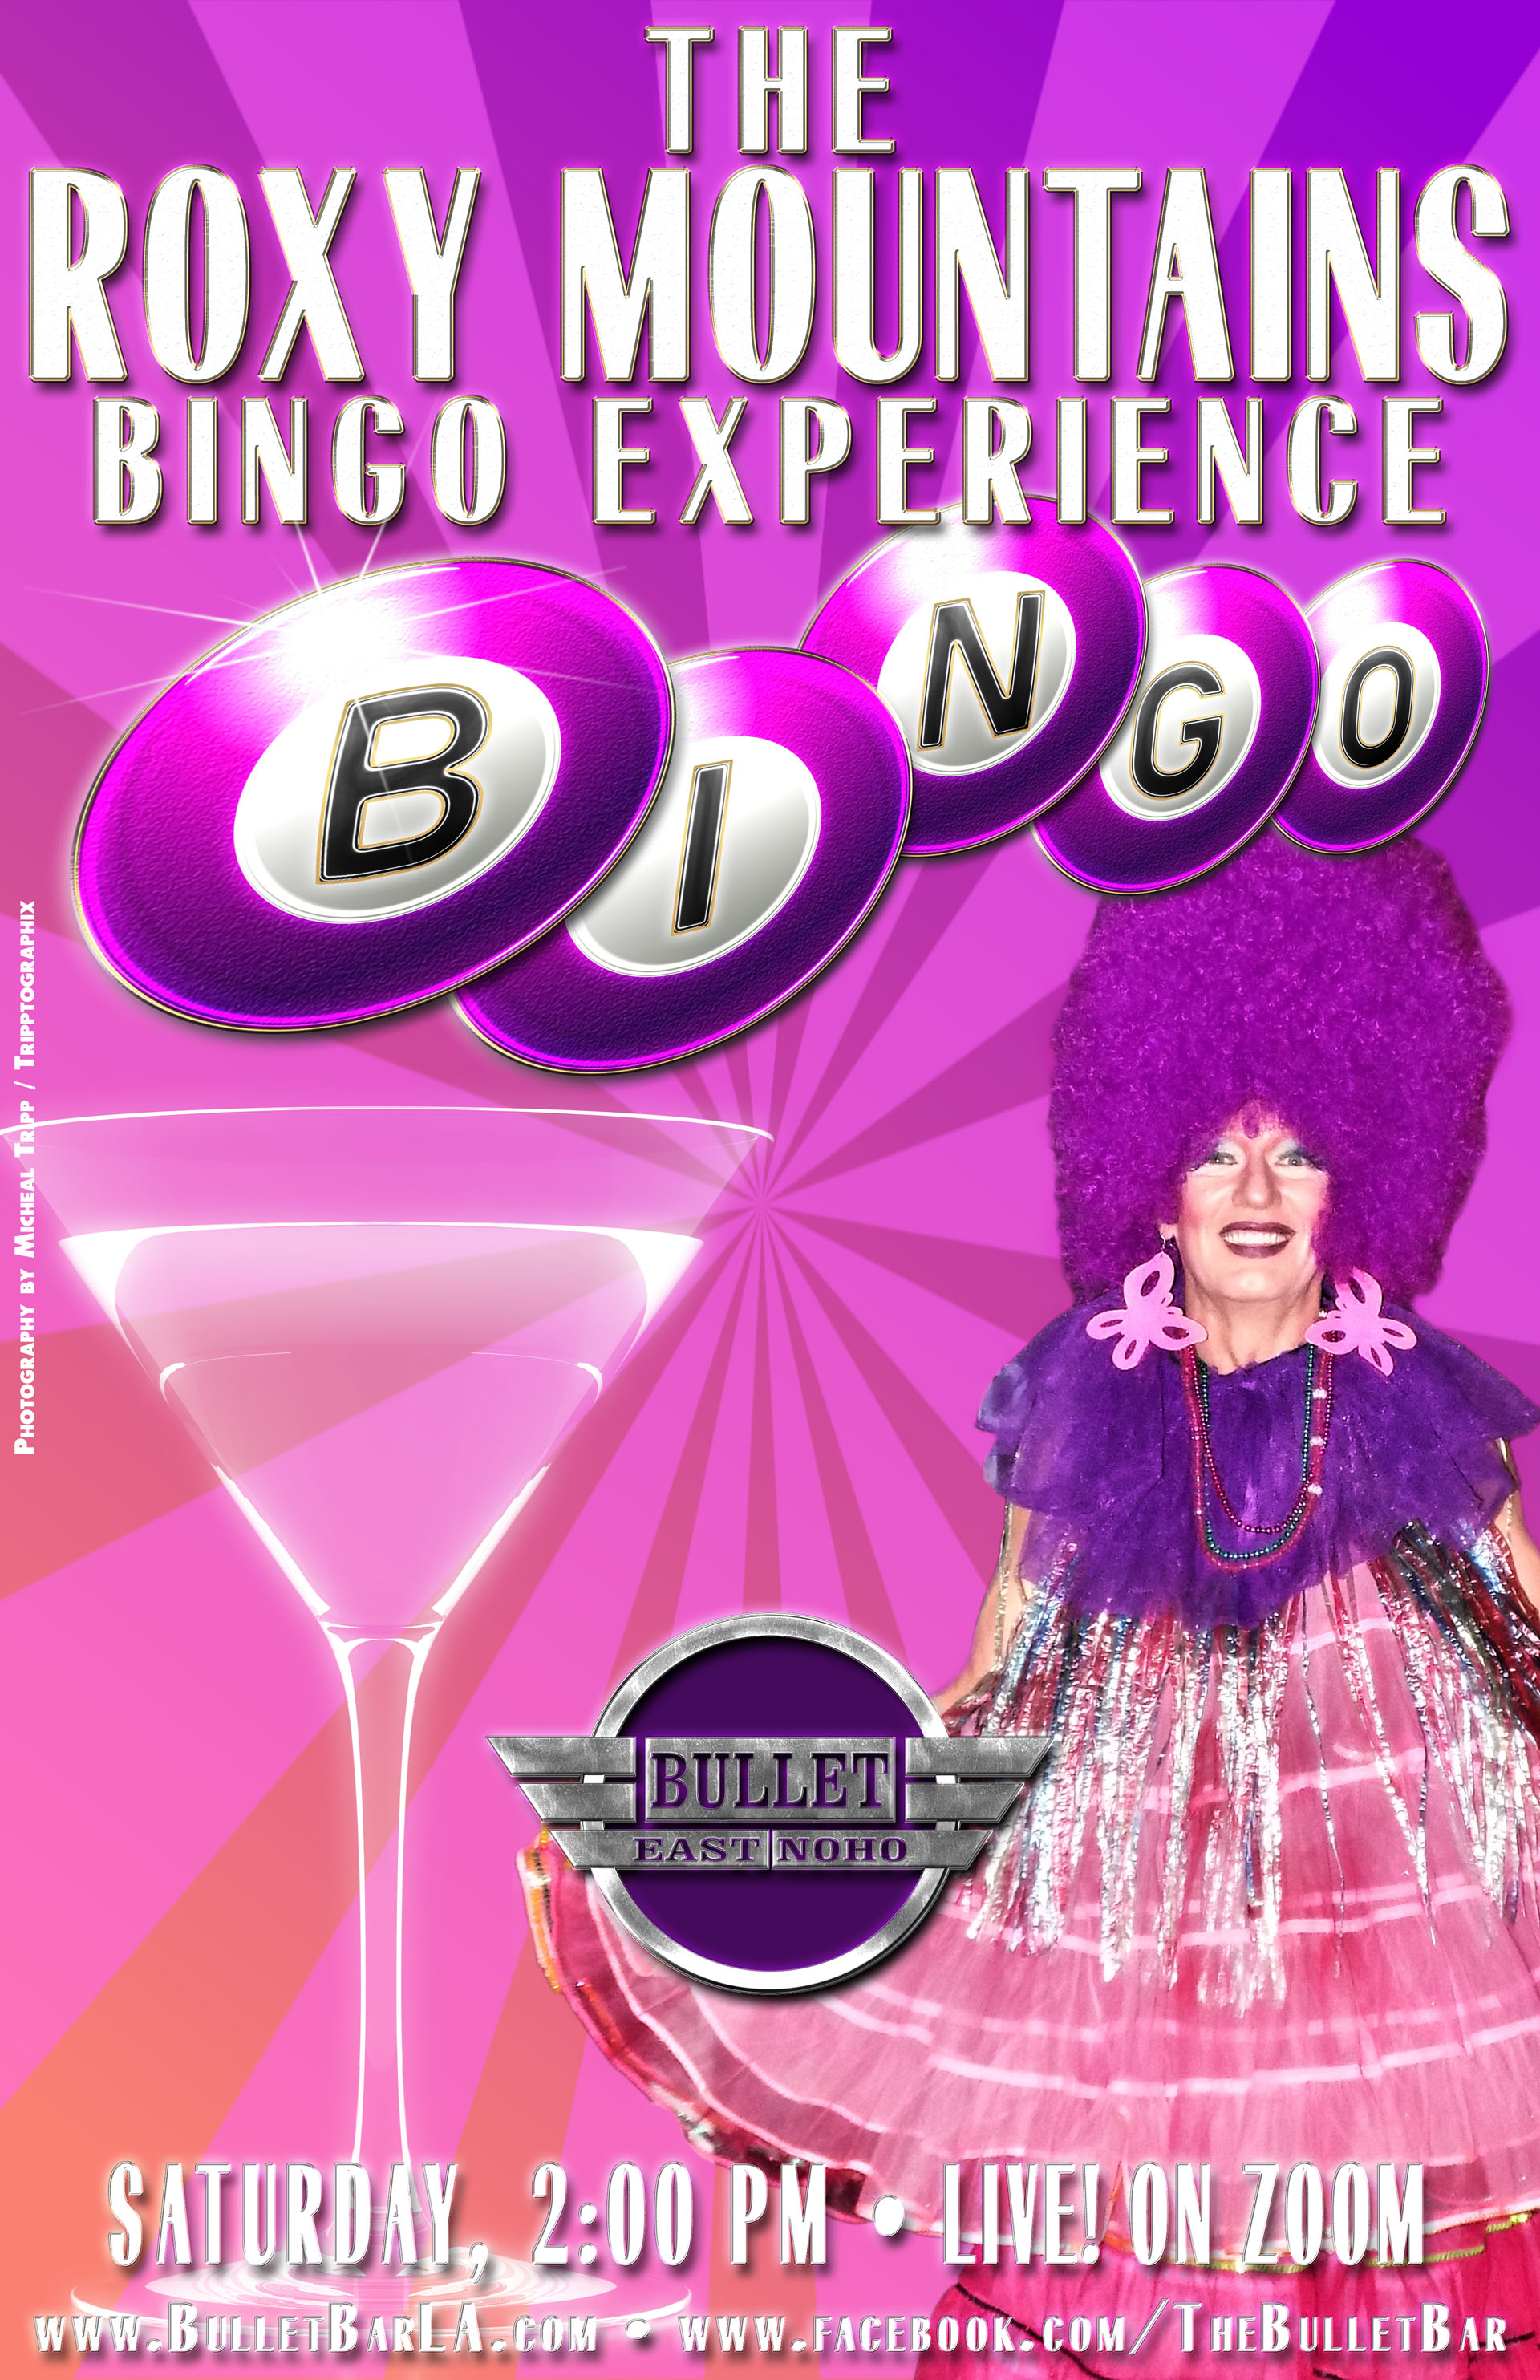 The Bullet Bar Presents THE ROXY MOUNTAINS BINGO ONLINE EXPERIENCE with ROXY MOUNTAINS: August 22, 2020 at 2PM! LIVE! on ZOOM!